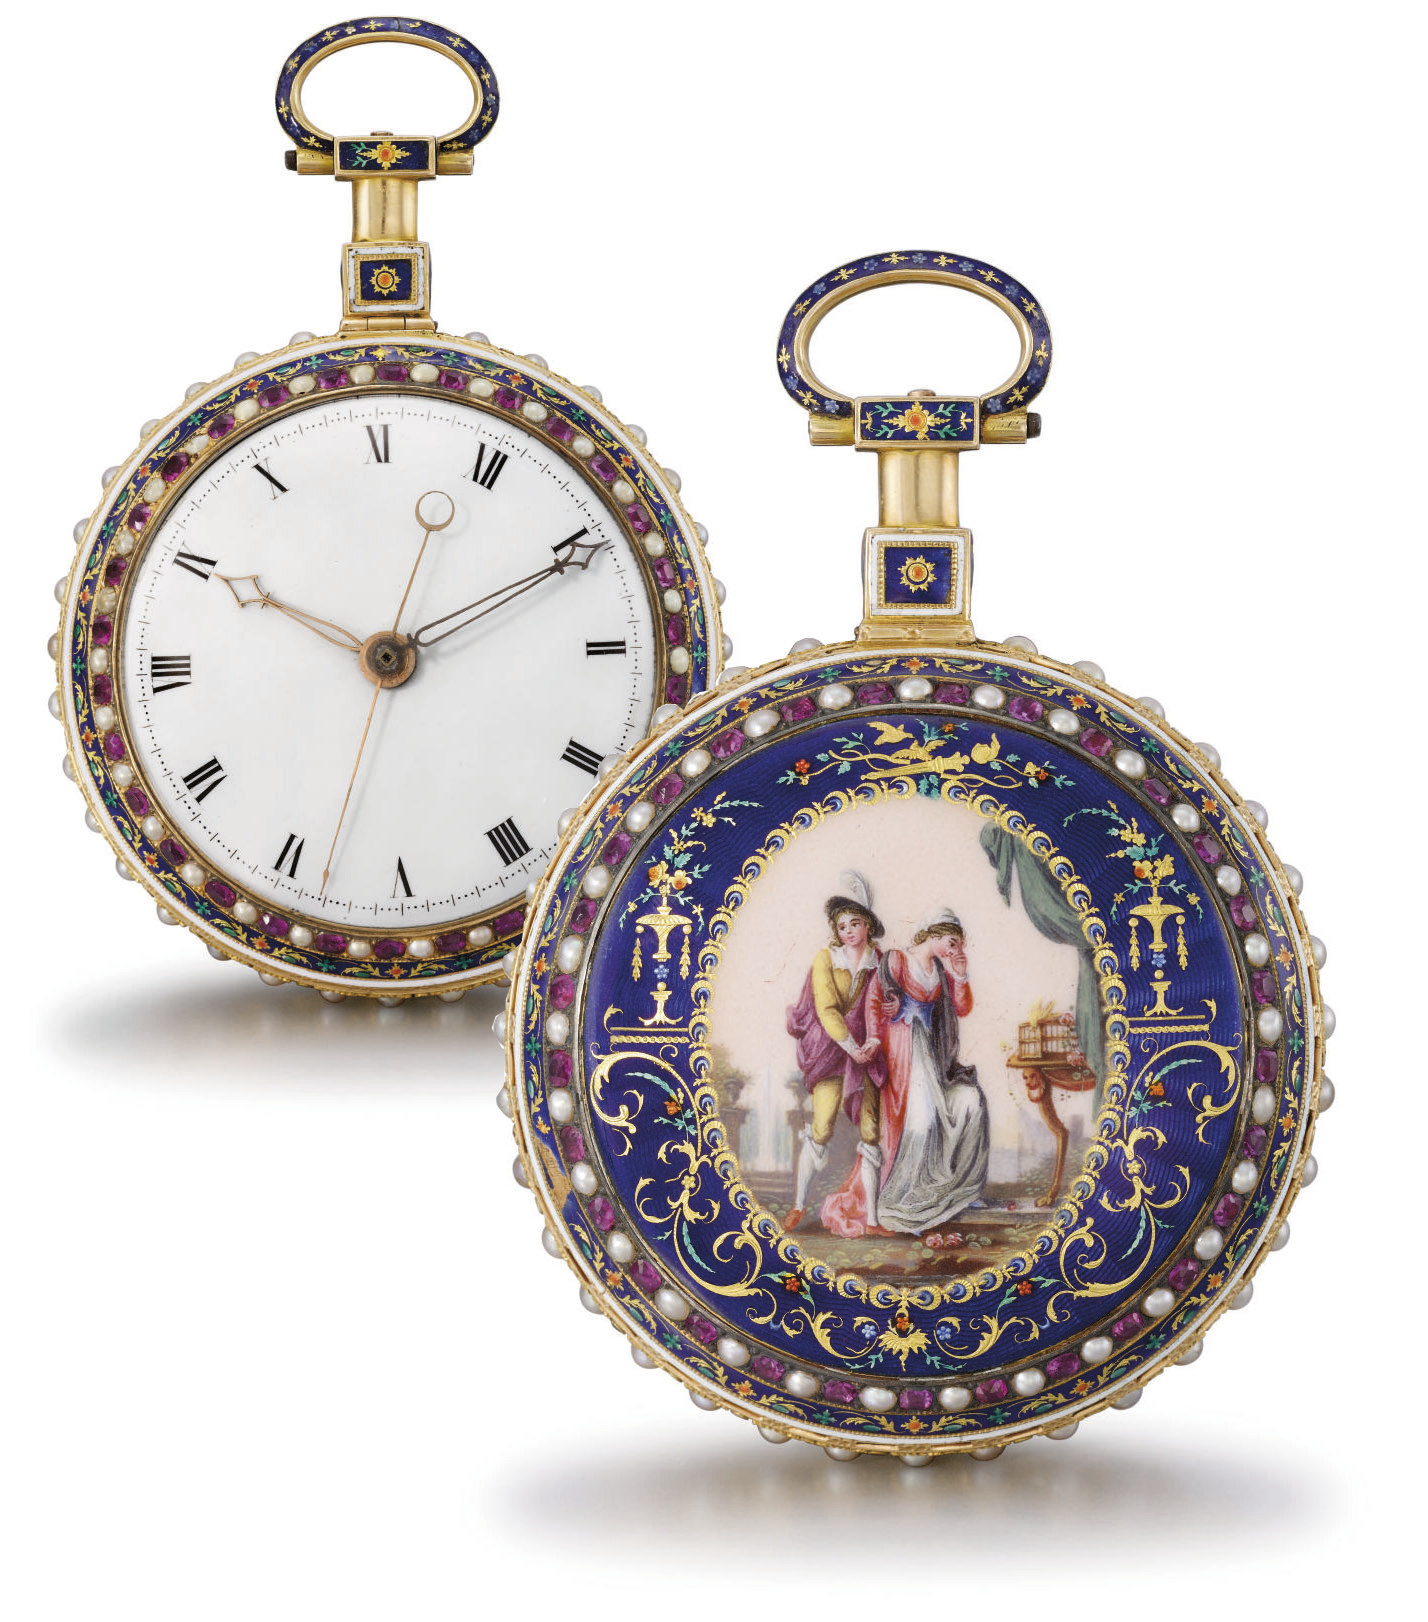 Attributed to Jaquet-Droz. A very fine and rare 18K gold, enamel, ruby and pearl-set grande sonnerie cylinder watch with centre seconds, made for the Chinese market